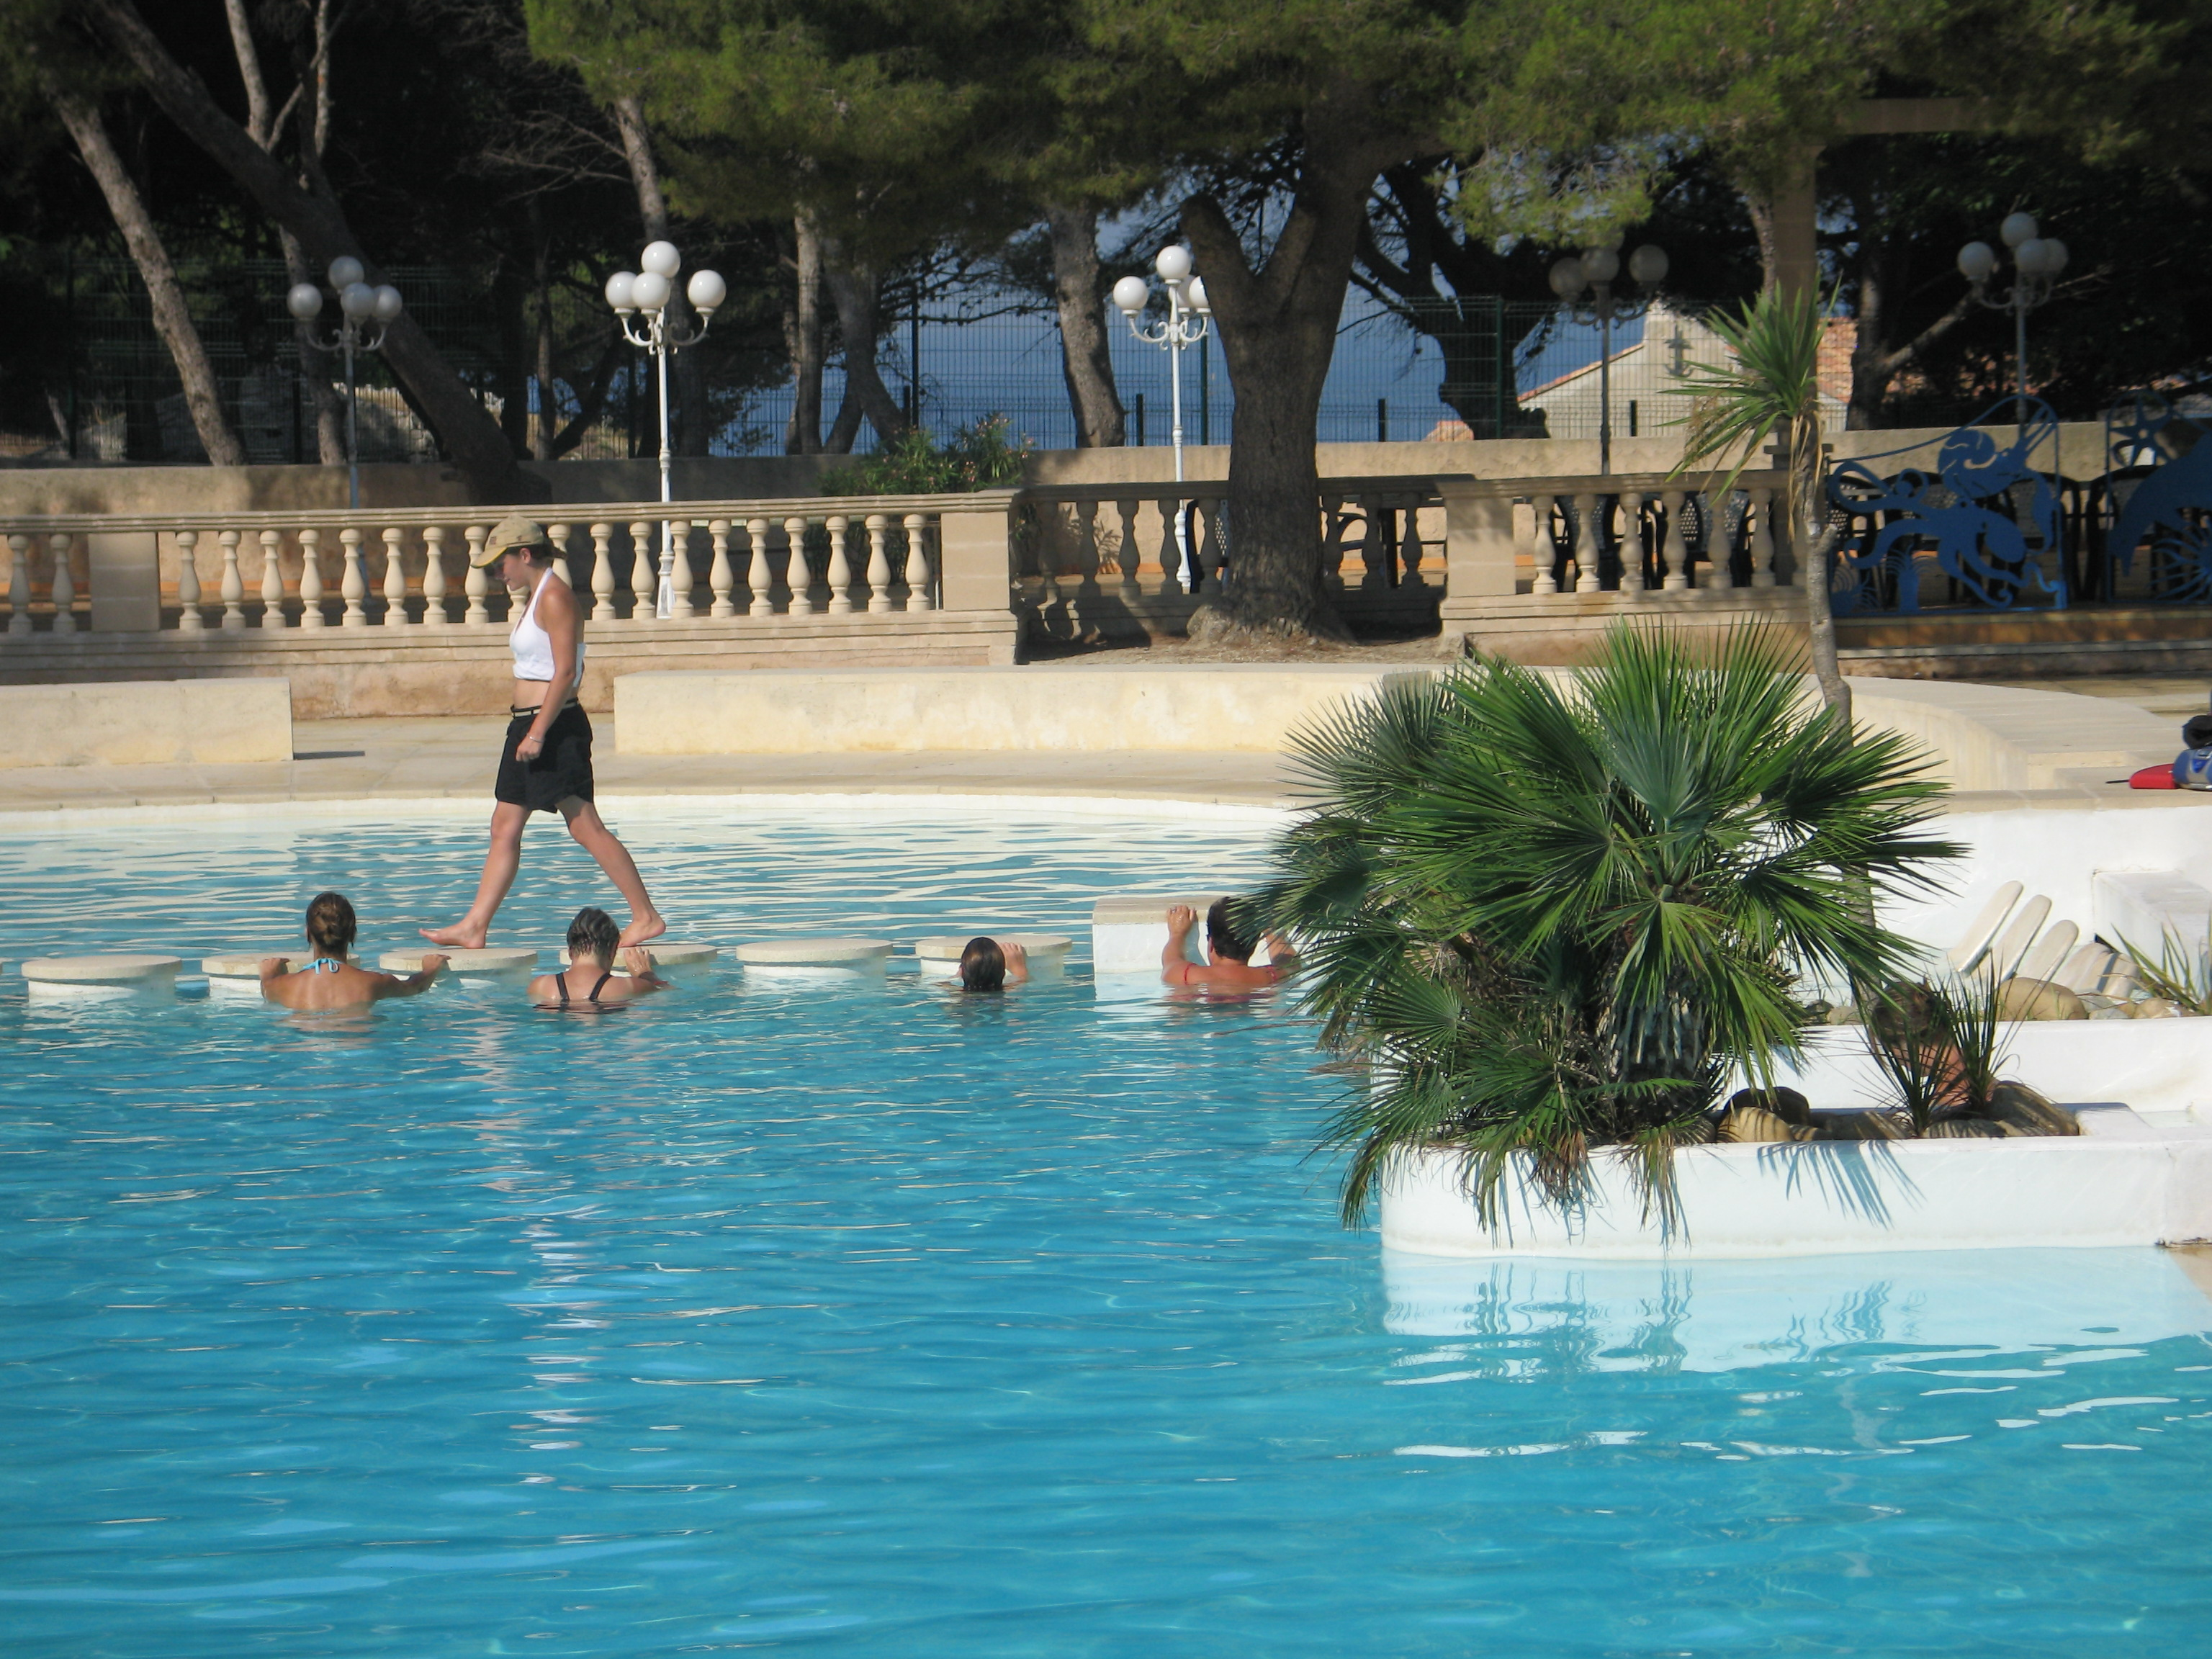 Camping le mas updated 2017 prices campground reviews for Animation piscine